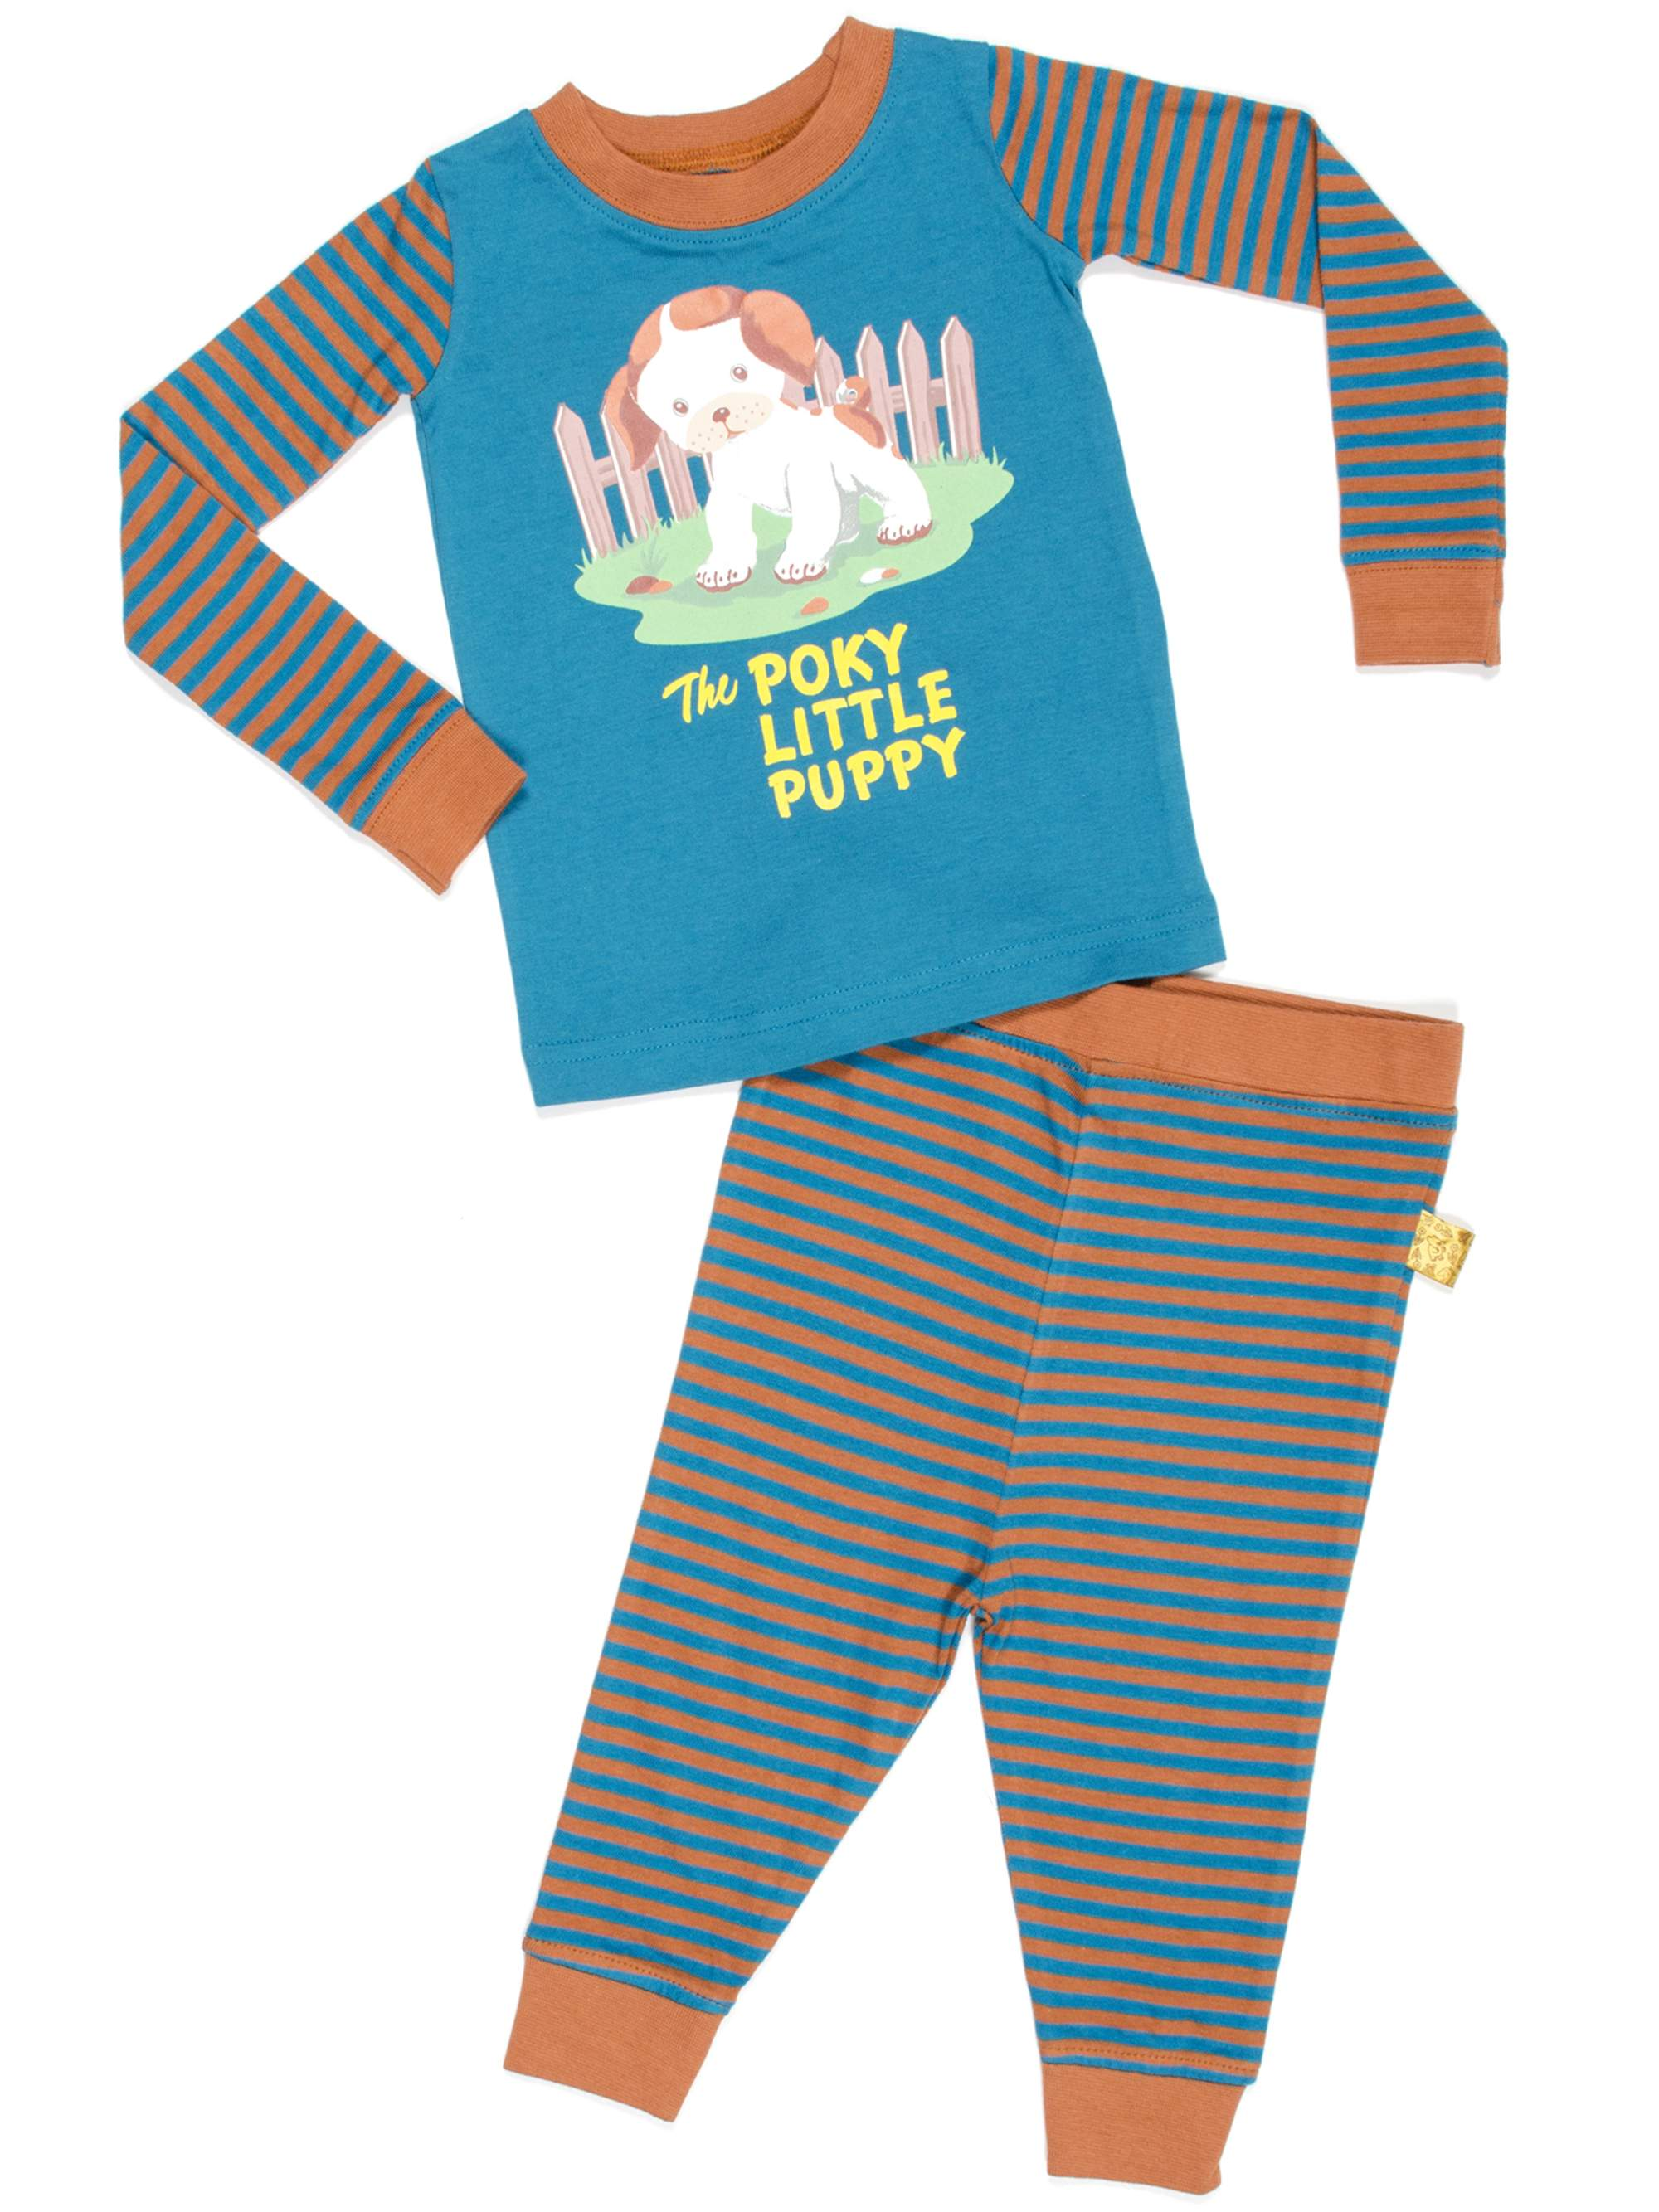 Golden Books Poky Puppy Baby Toddler Boy or Girl Unisex Pajamas 2pc Set